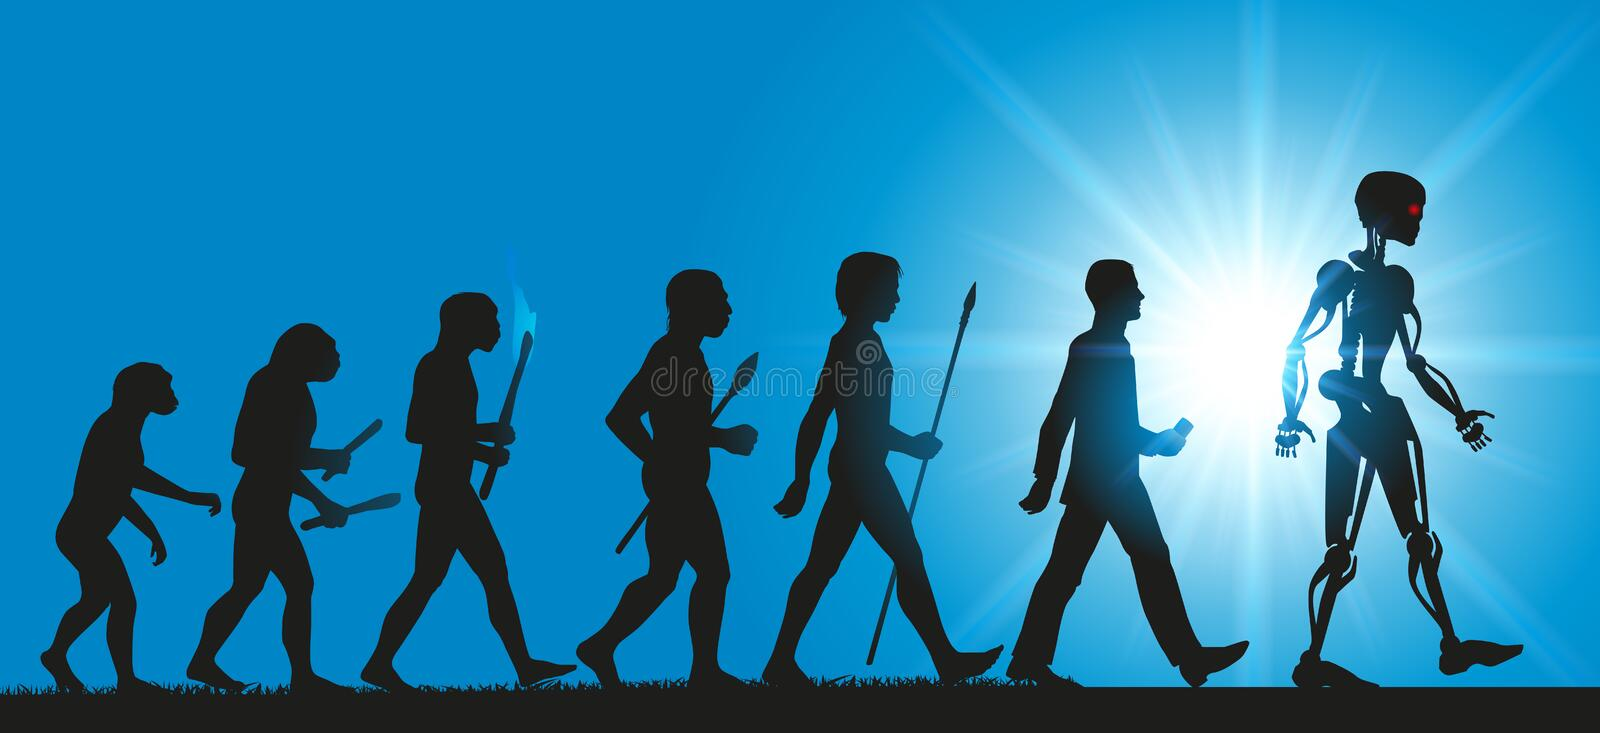 Concept of the evolution of humanity towards robots and artificial intelligence stock illustration